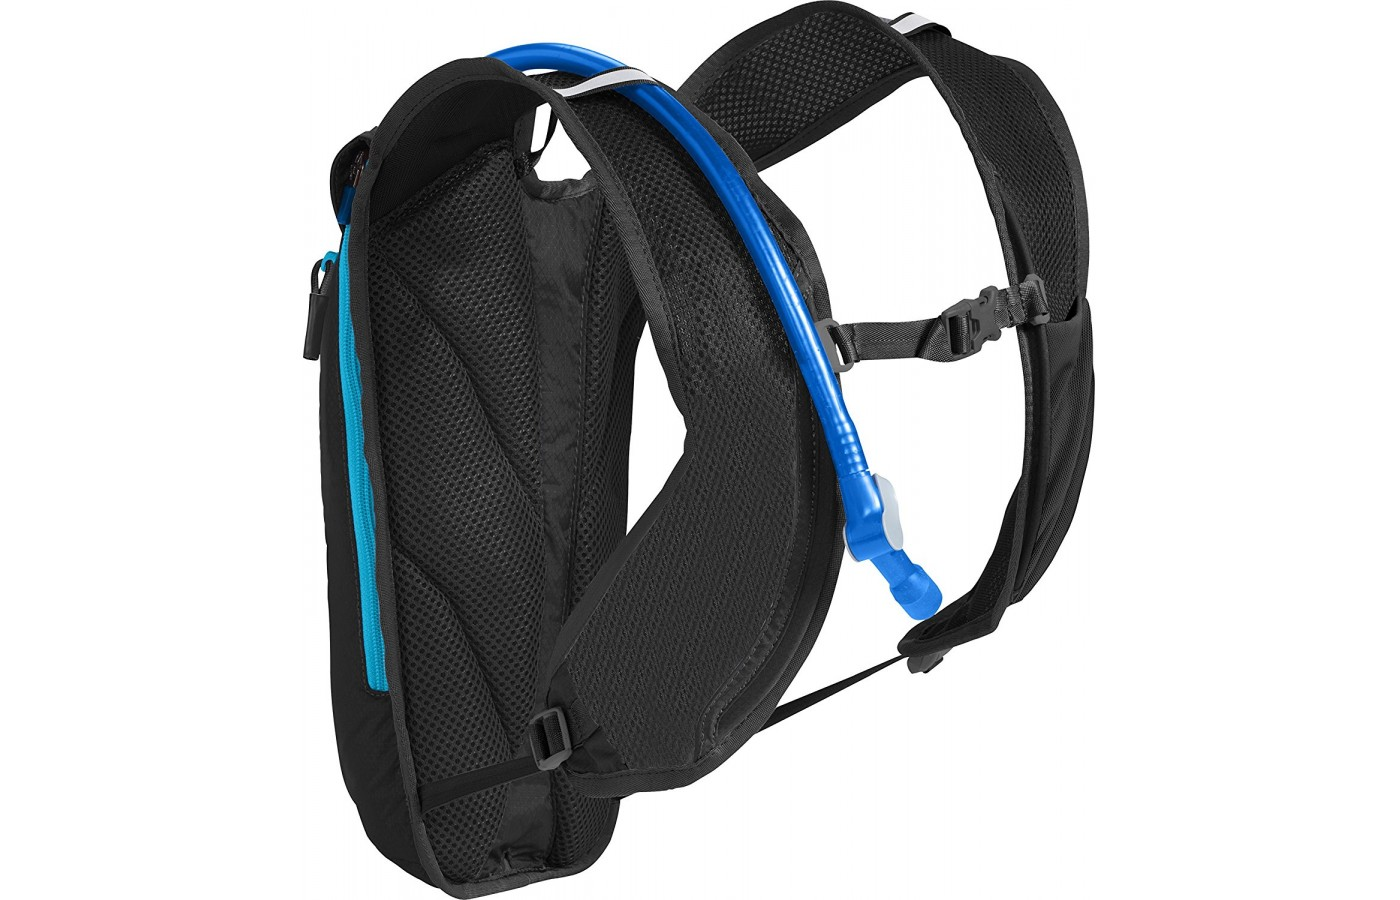 back view of the Camelbak Octane Dart Hydration pack in black